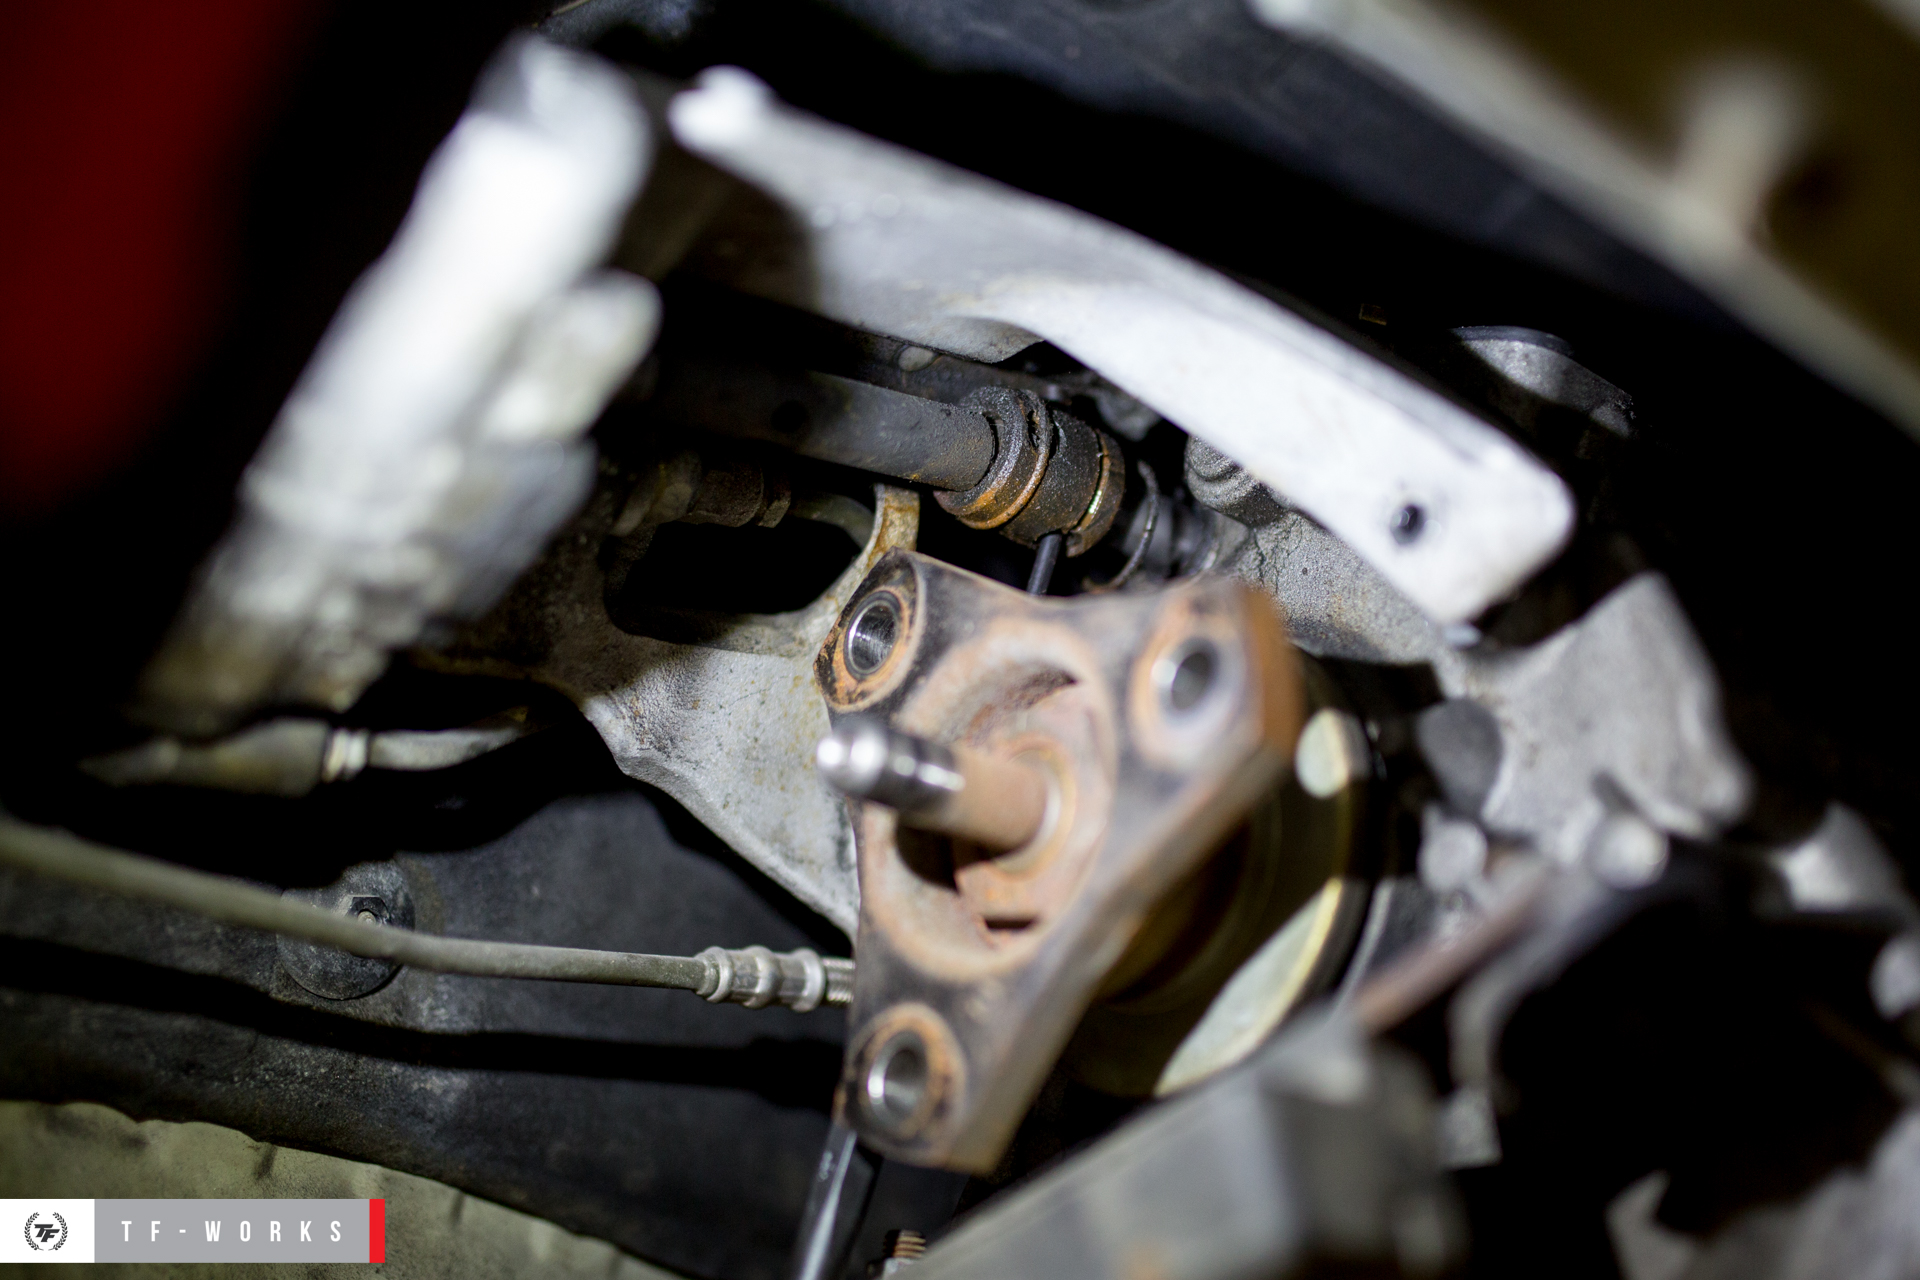 Project: E46 M3 SMG to Manual Conversion Part 2 - TF-Works Blog